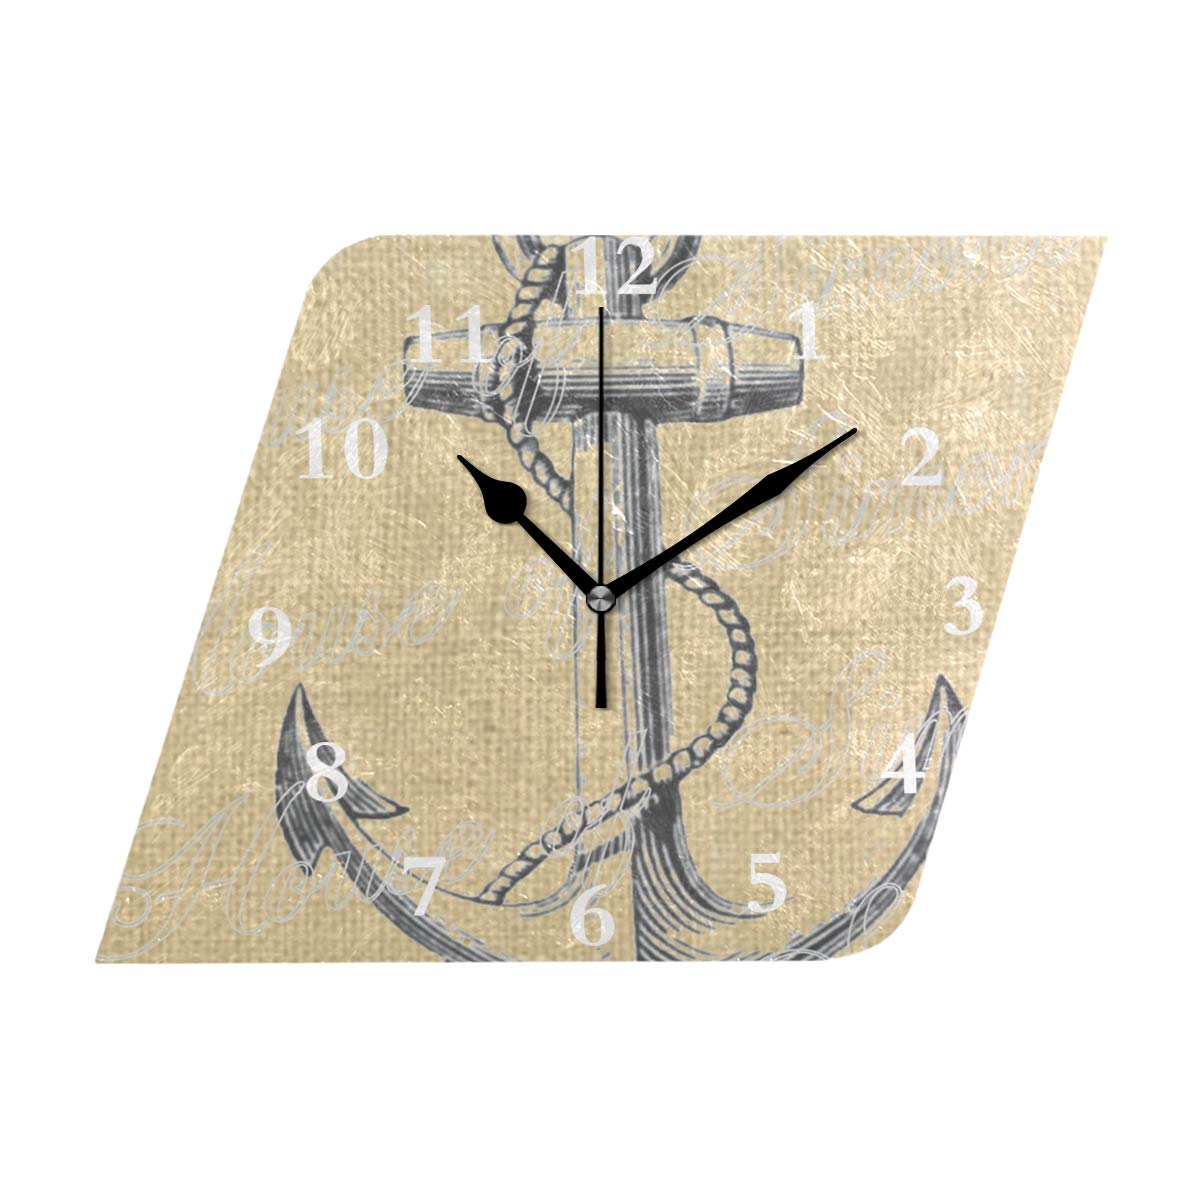 HU MOVR Wall Clock Anchor Ship Nautical Sea Vintage Silent Non Ticking Decorative Diamond Digital Clocks Indoor Outdoor Kitchen Bedroom Living Room